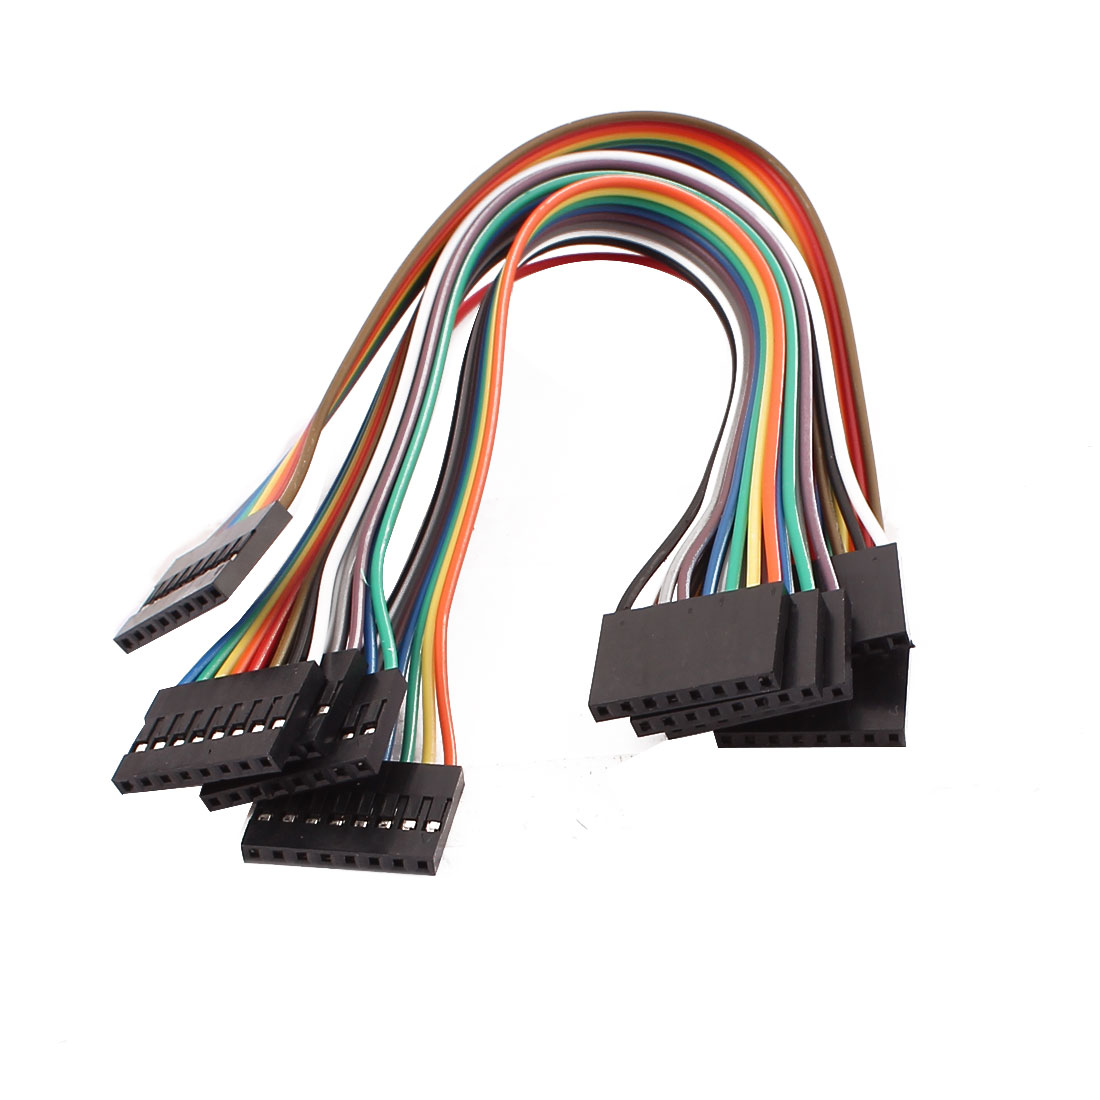 5 Pcs Female to Female 8P Jumper Wires Ribbon Cables Pi Pic Breadboard DIY 20cm Long